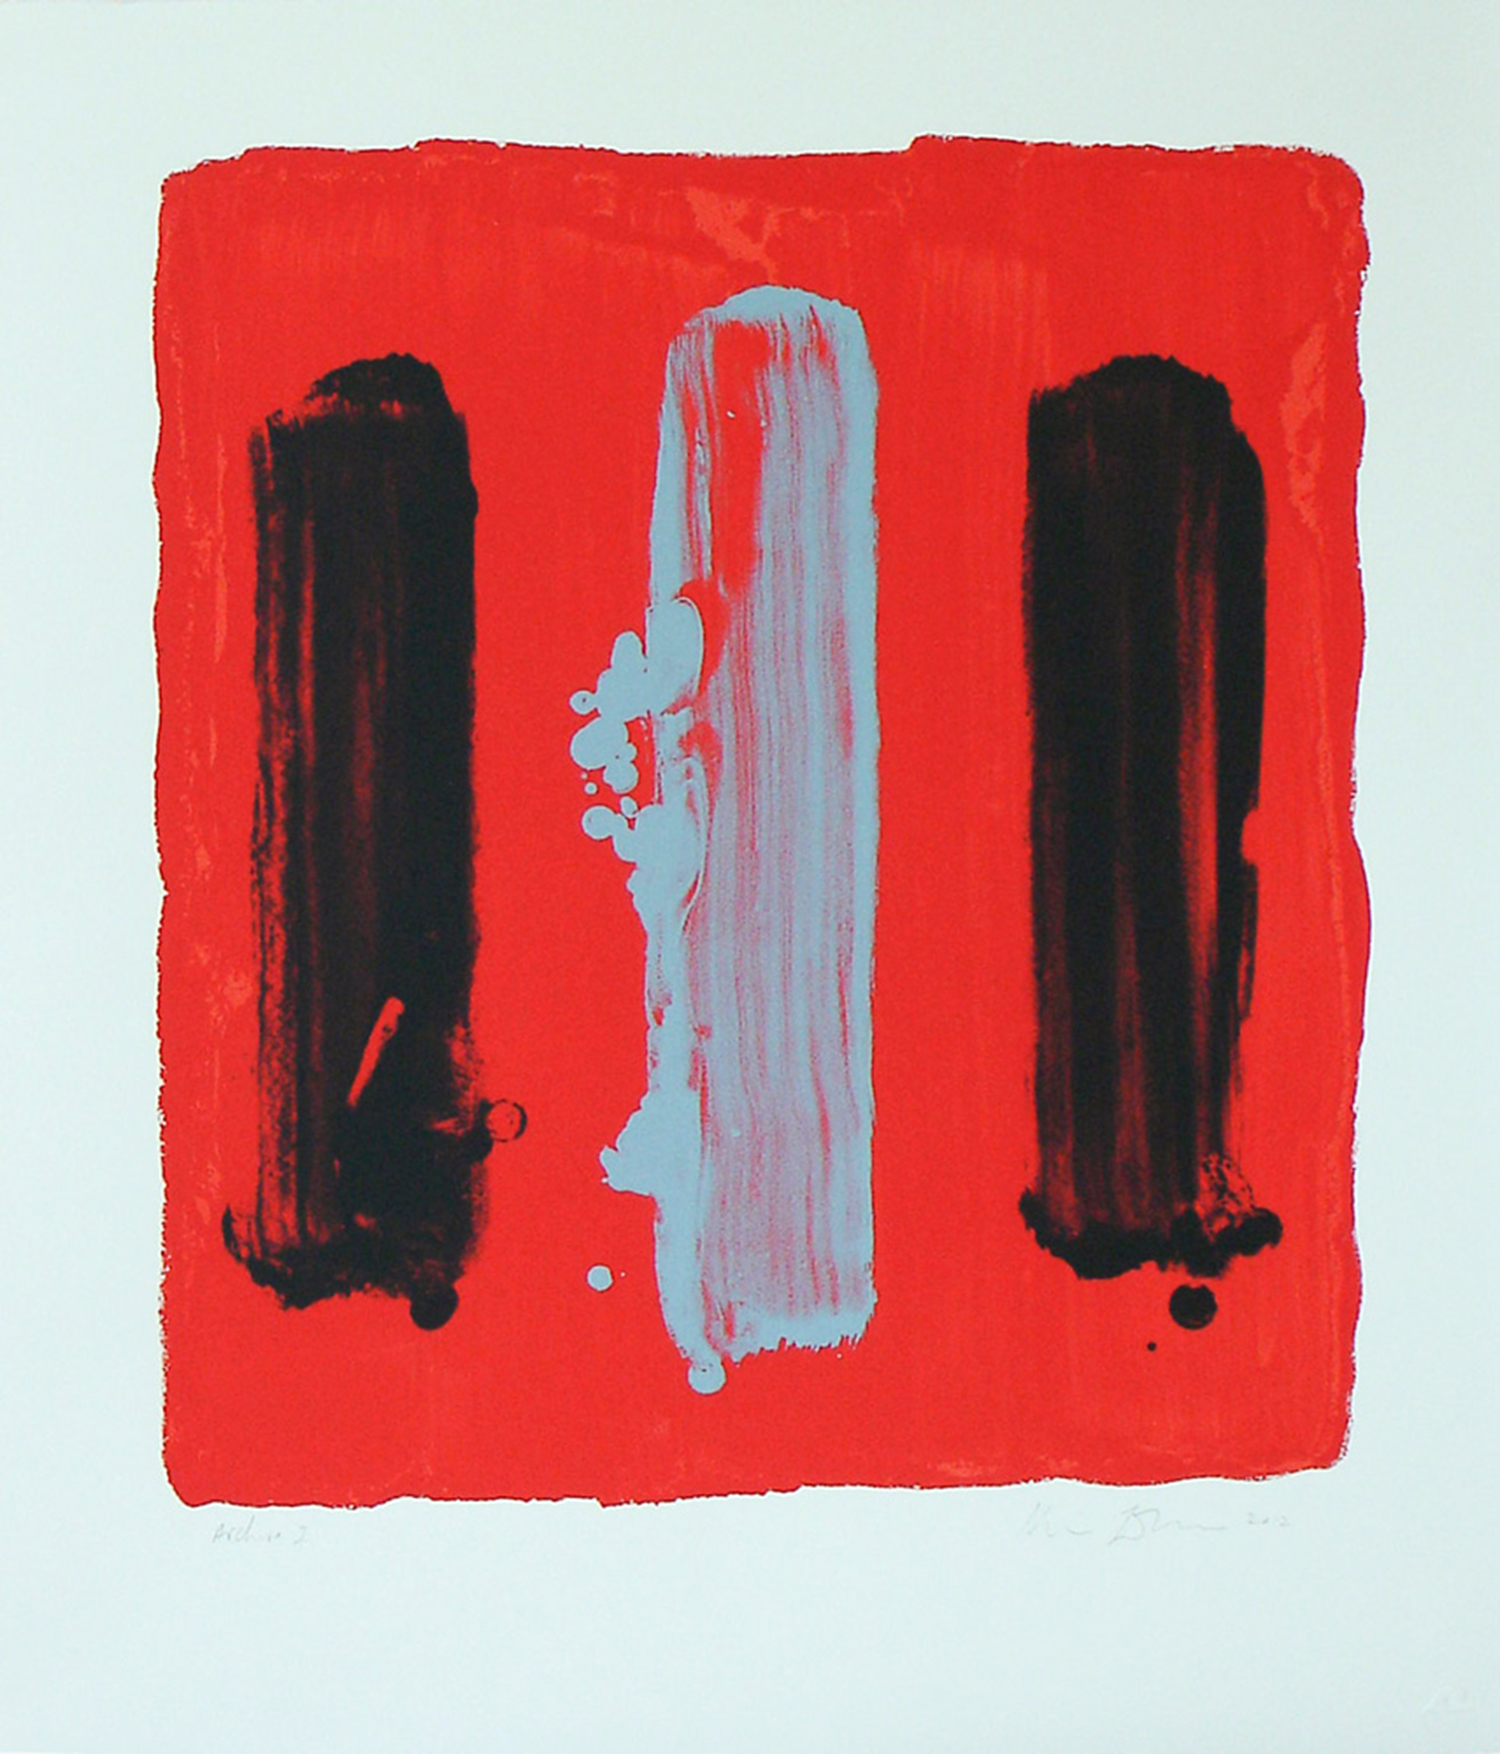 Kip Gresham, Lost in the Funhouse    Date:   2012   Size (cm - unframed):   66.5 x 56   Technique:   Screenprint   Materials:   Somerset Soft White 300gsm   Edition size:   15   Publisher:   The Print Studio   Copyright:   The Artist    P.O.A.